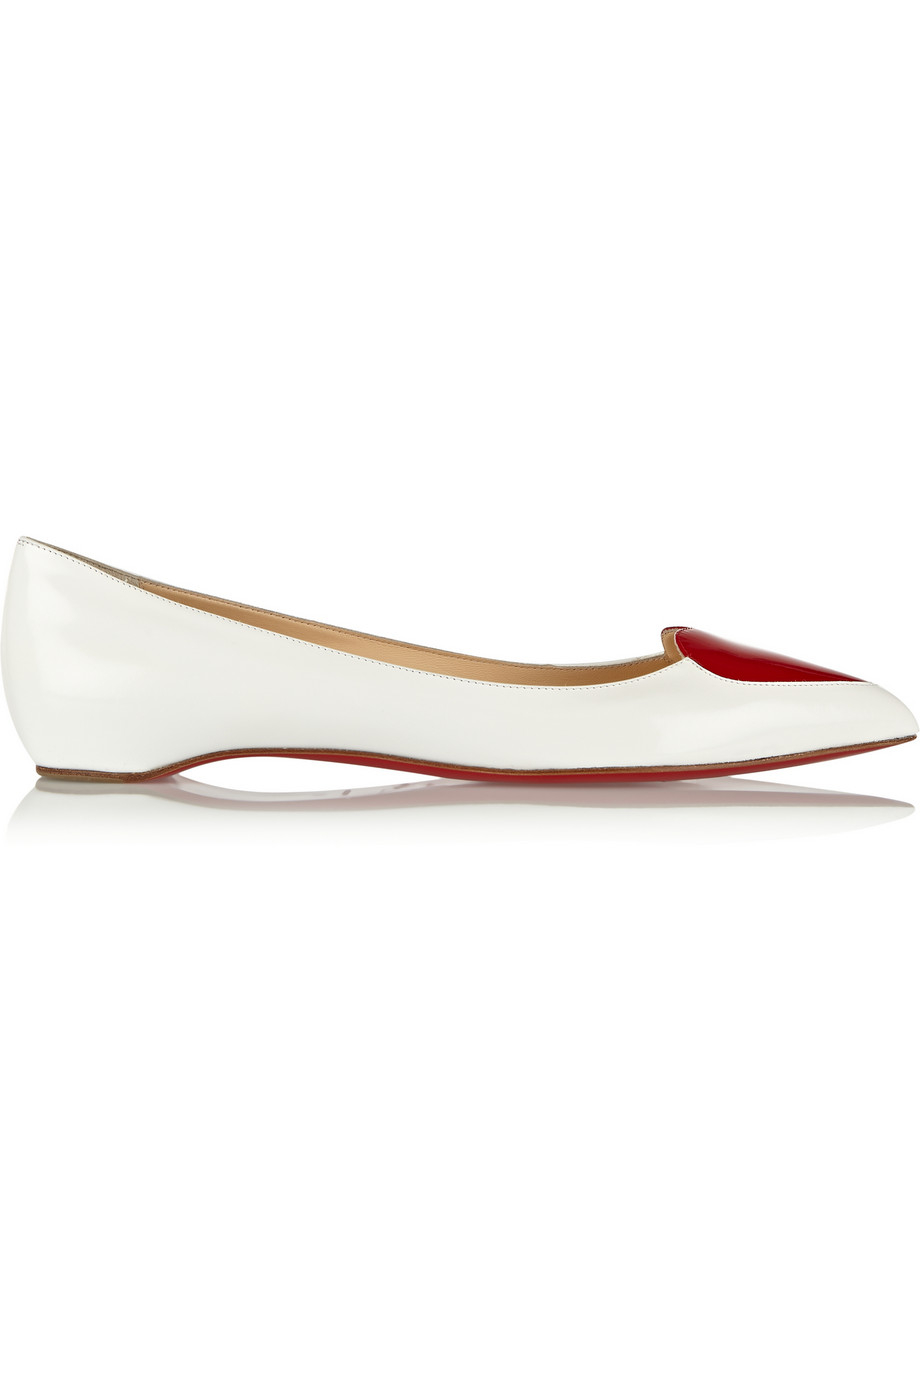 replica shoes louboutin - Christian louboutin Corafront Patent-Leather Point-Toe Flats in ...